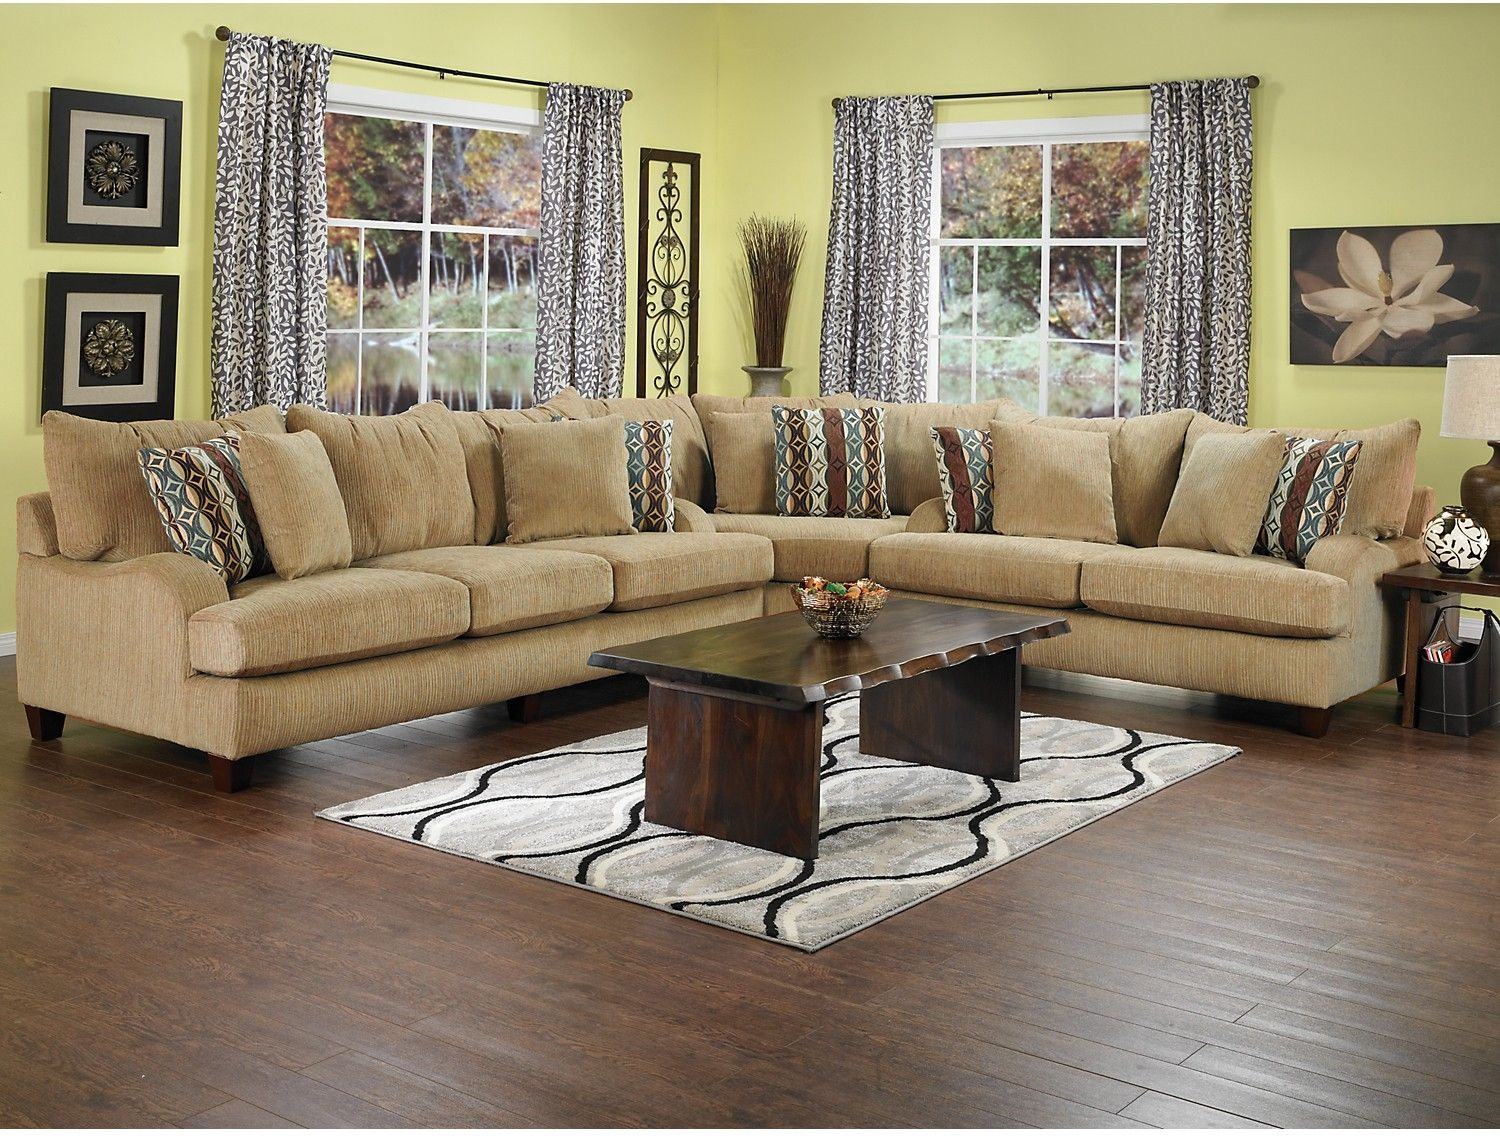 Nice Living Room Furniture   Putty Chenille Sectional   Beige